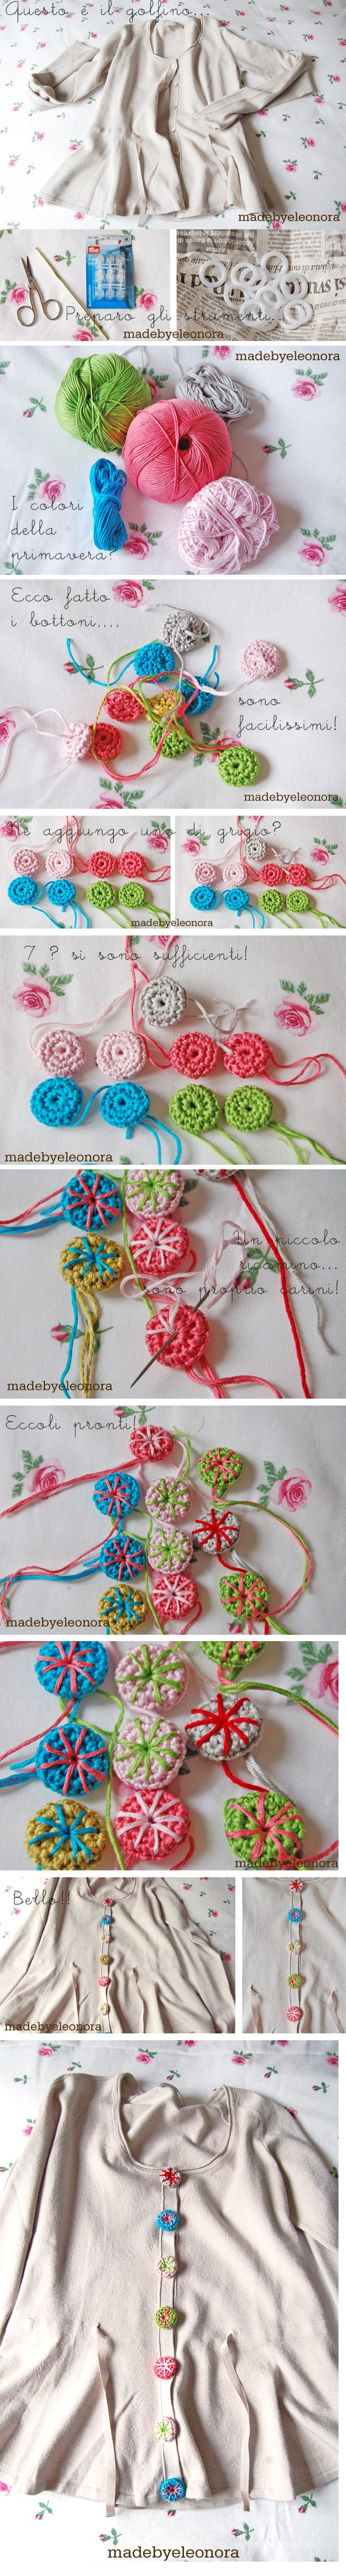 personal project: crochet bottons and  sweater becomes new!  http://madebyeleonora.blogspot.it